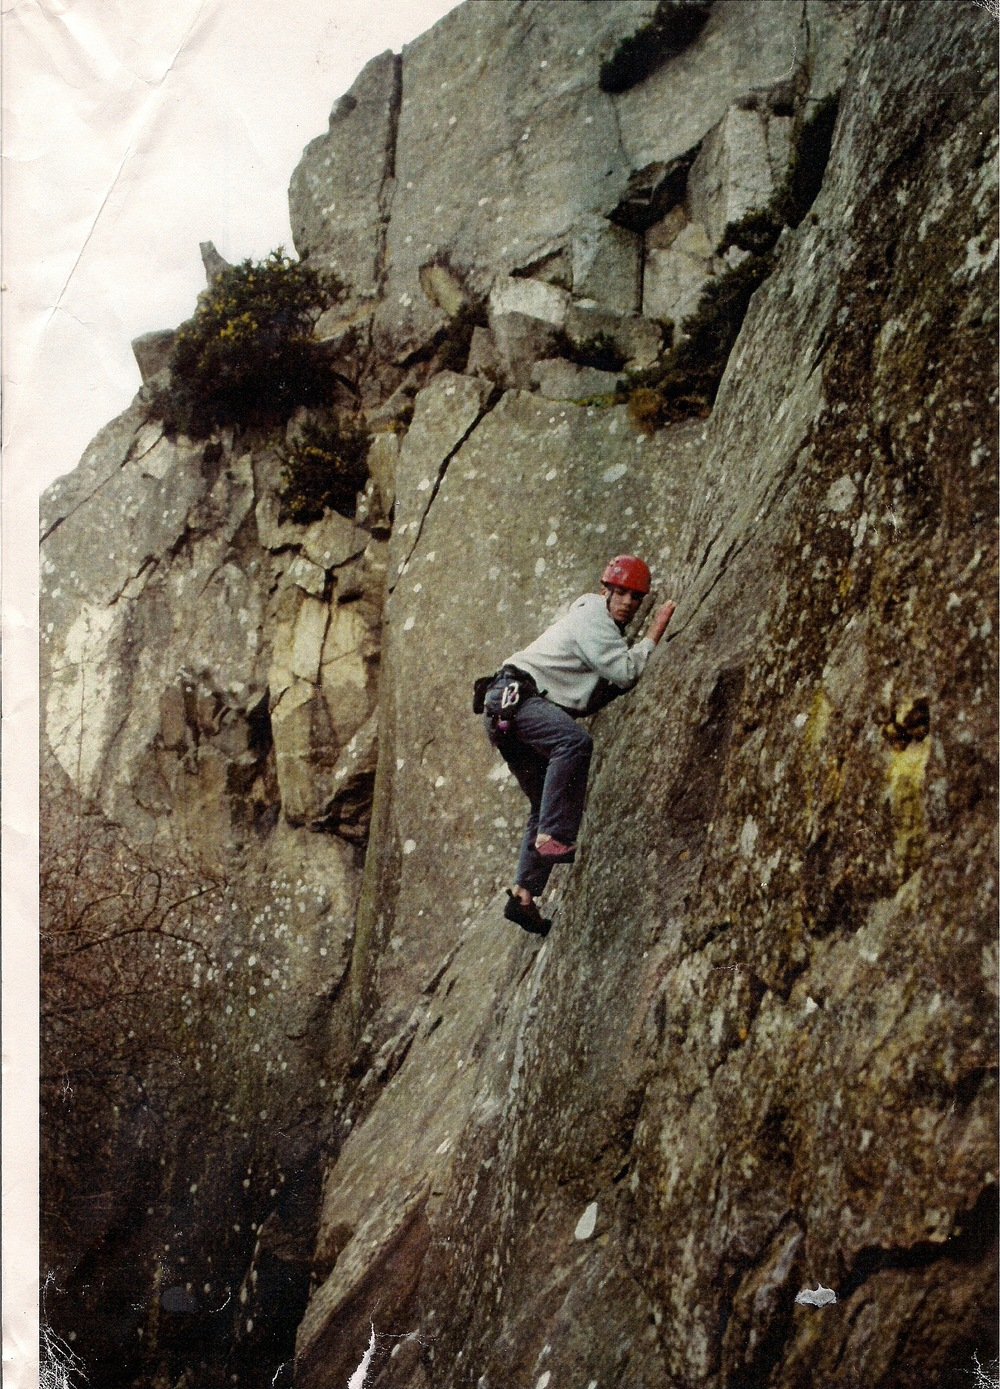 A younger self solo-ing in Dalkey quarry, E1 and no idea of the name (I've never really cared for names on forgettable routes). Glad to see I had sense to wear a helmet, especially after the last link!